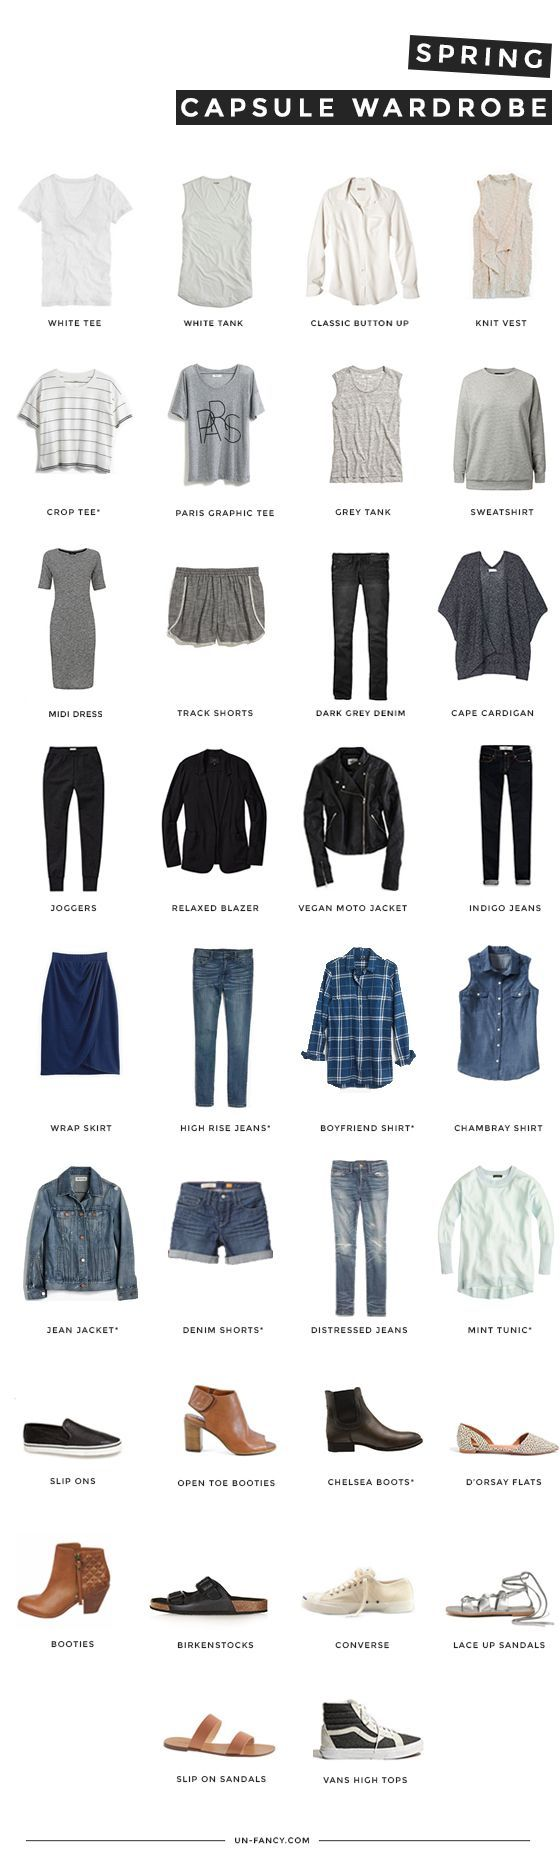 Spring Capsule Wardrobe 2015 ~ a simplified mix and match wardrobe that will keep you looking great this spring